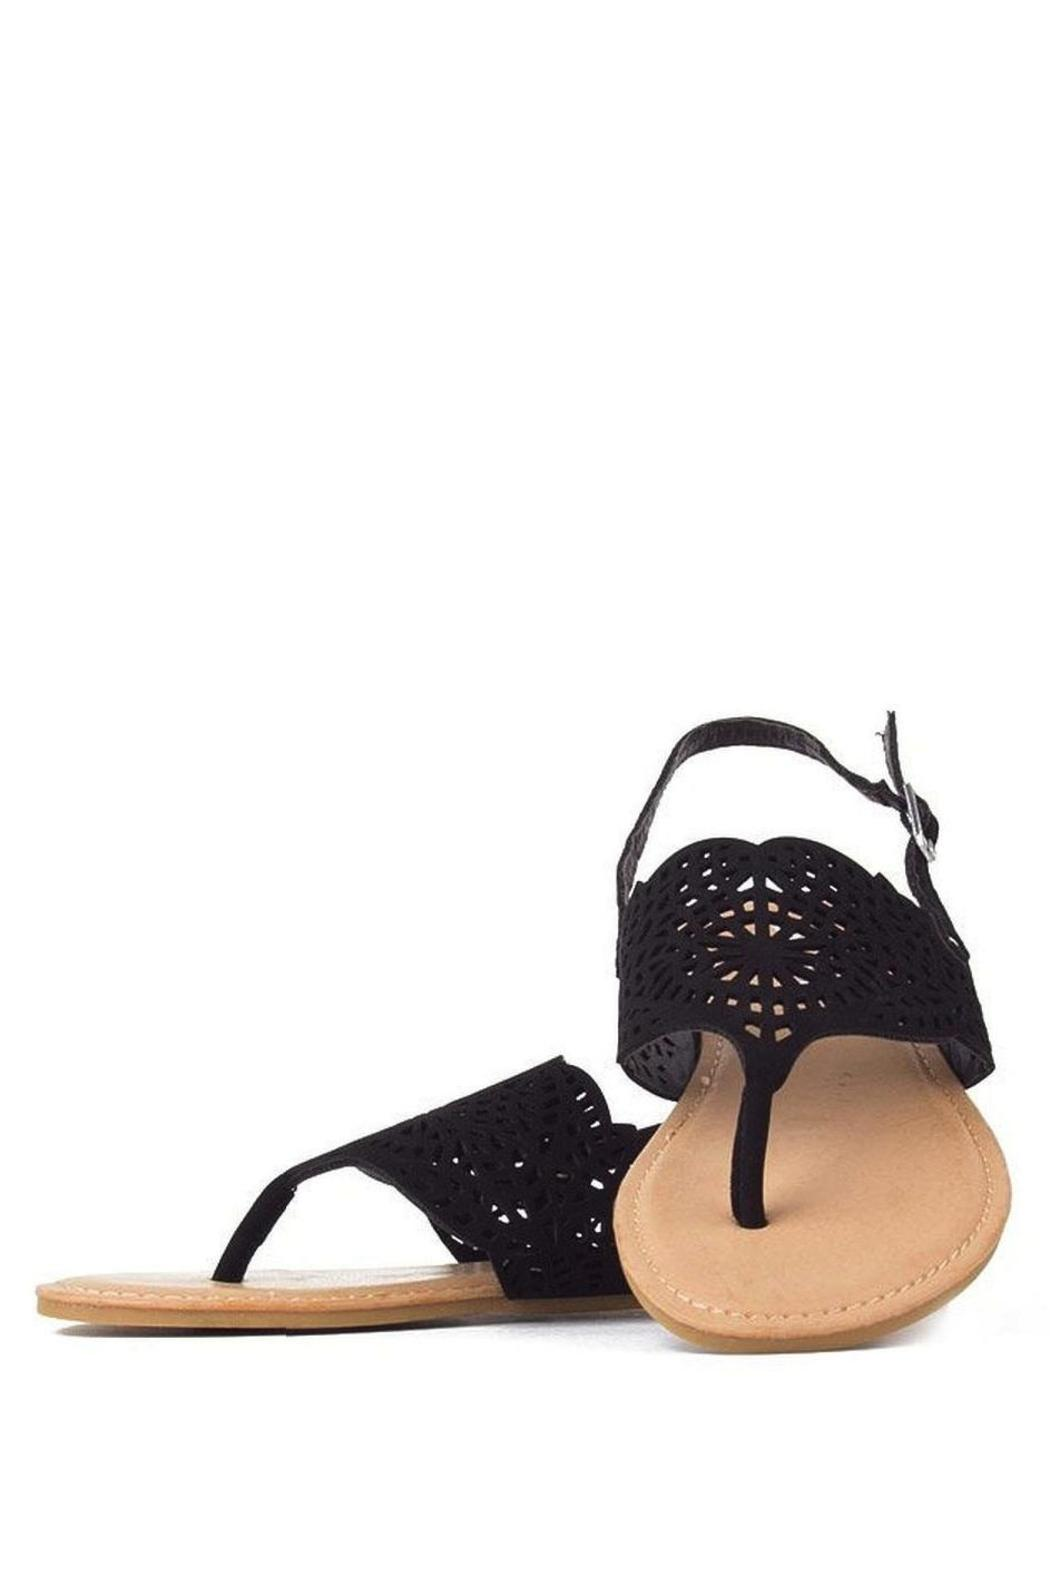 Bamboo Cut-Out Ankle-Strap Flat-Sandal - Front Full Image